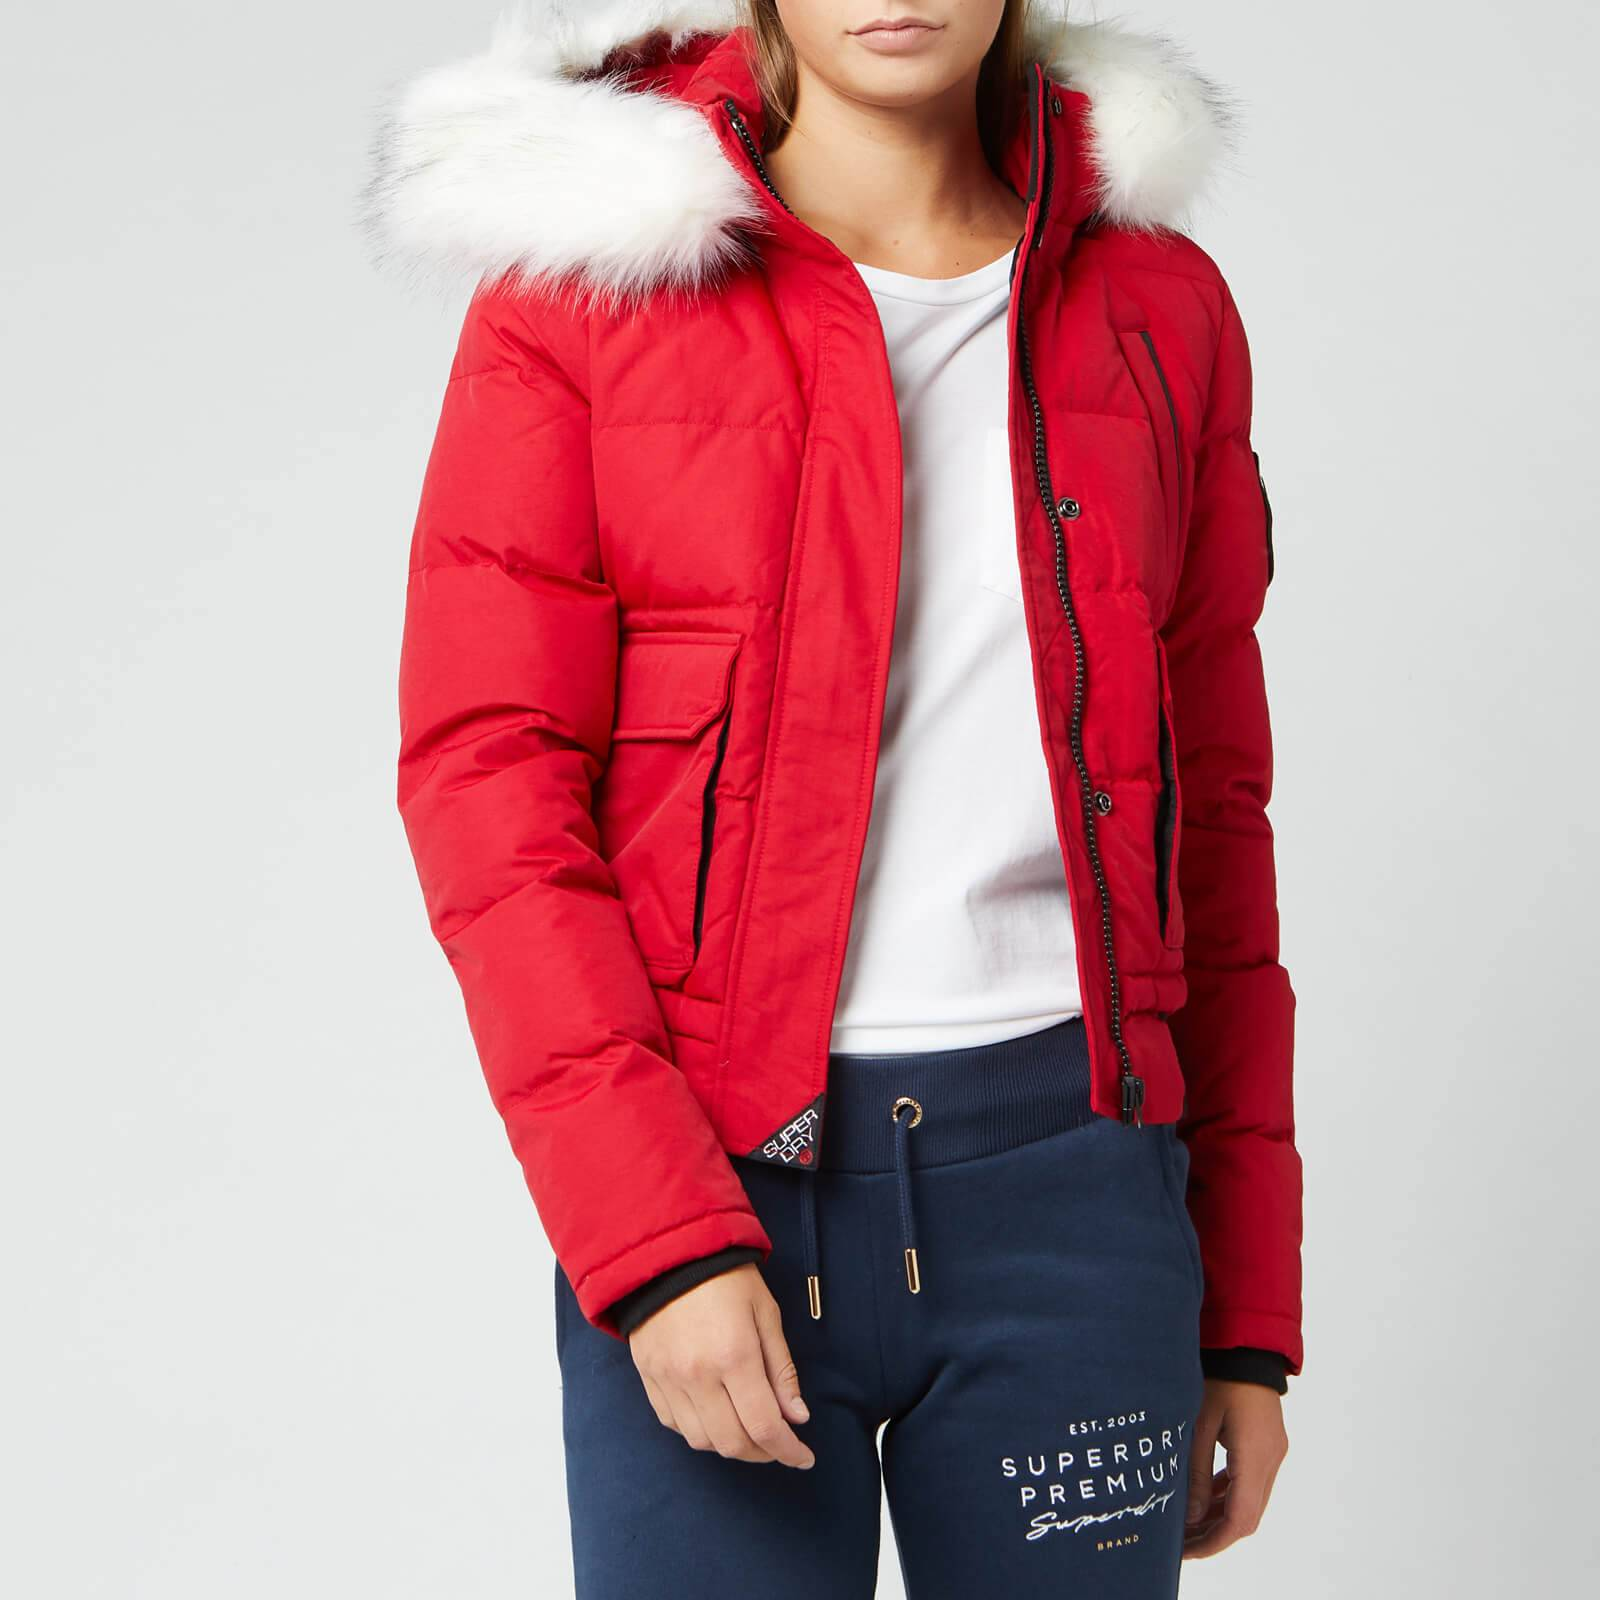 Superdry Women's Everest Ella Bomber Jacket - Chili Pepper - UK 8